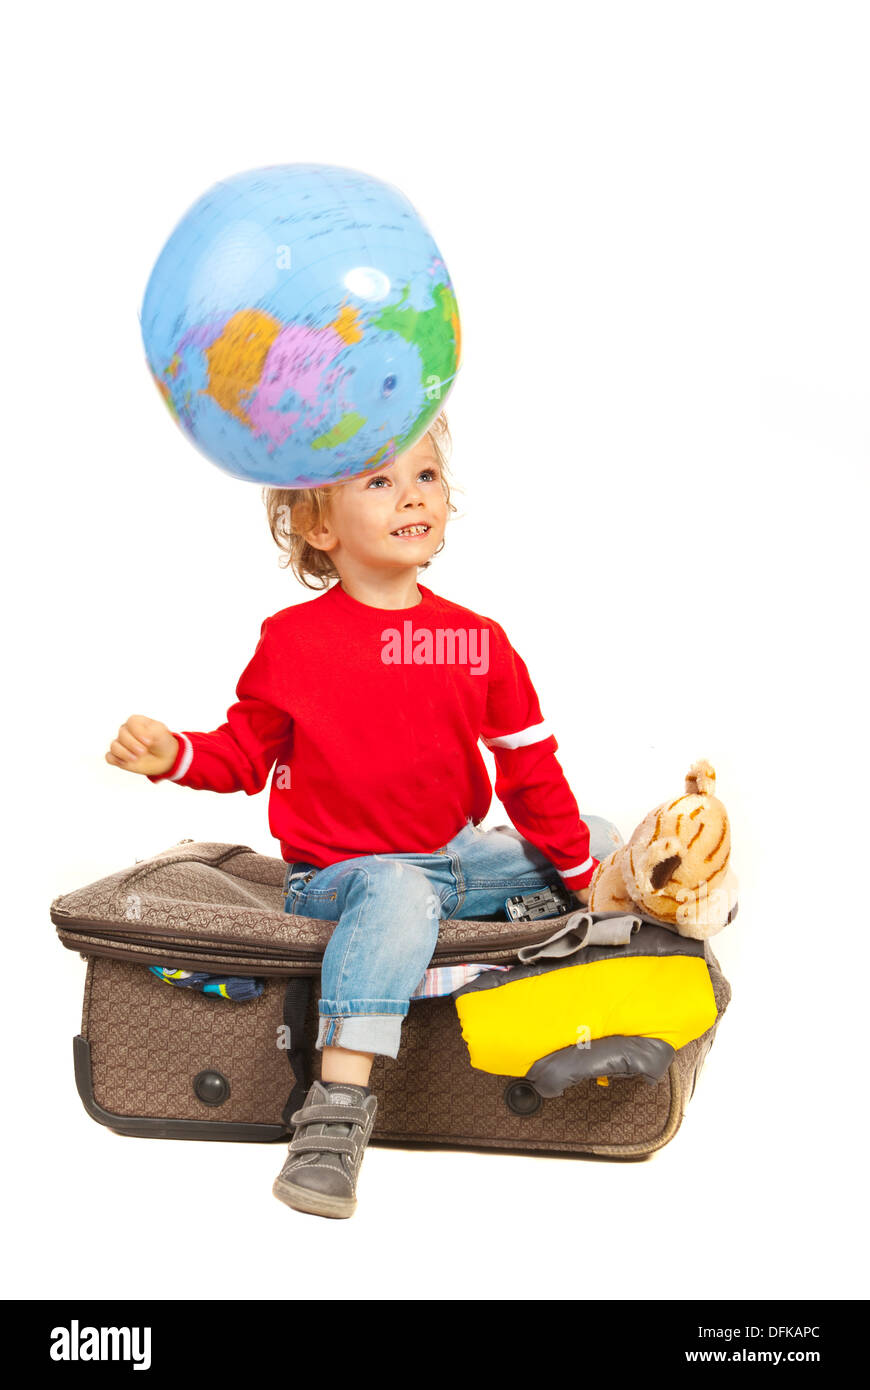 Child dreaming with open eyes and looking at world globe in motion and sitting on luggage against white background - Stock Image